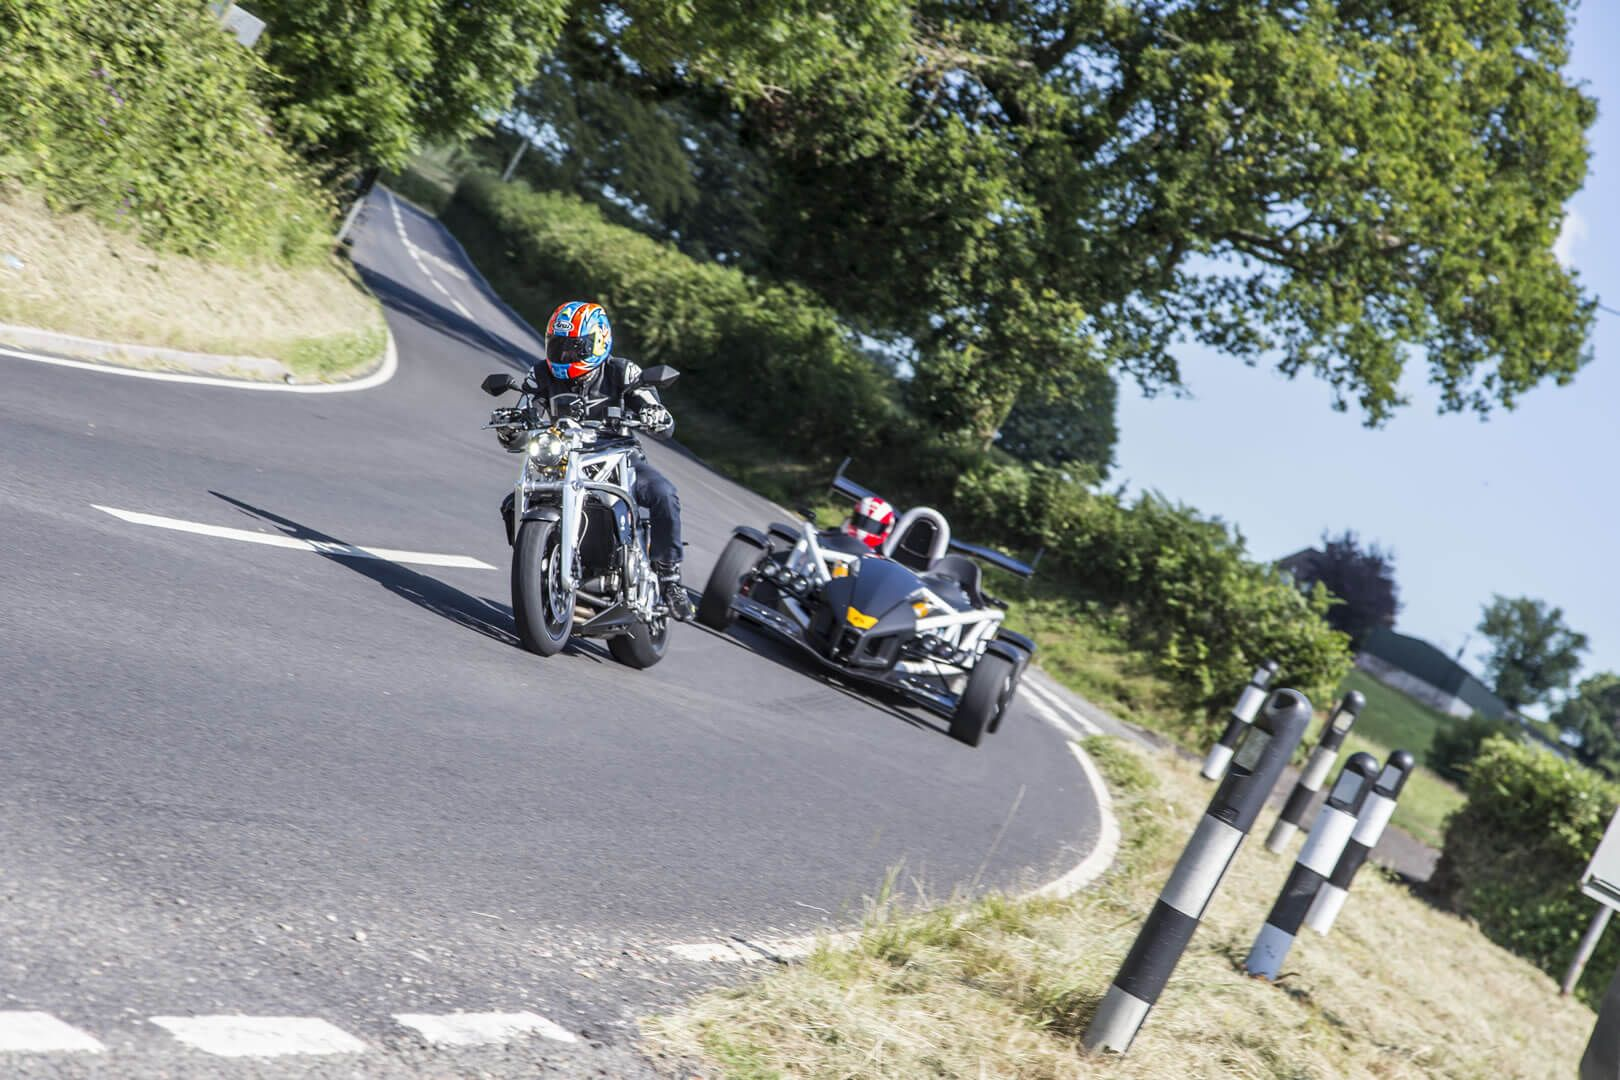 Ariel Ace and Atom